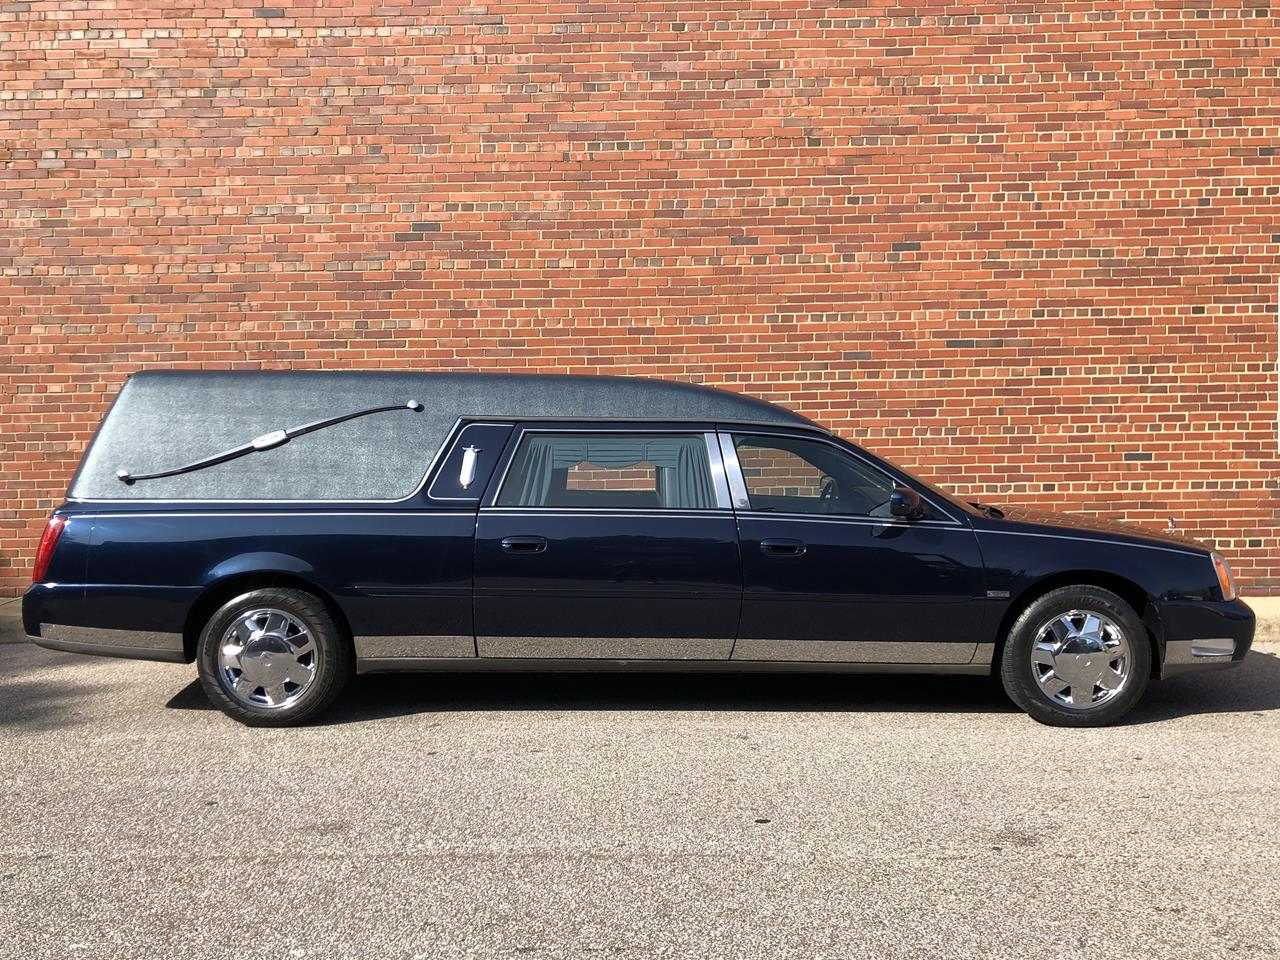 2003 Cadillac Eagle Kingsley Hearse